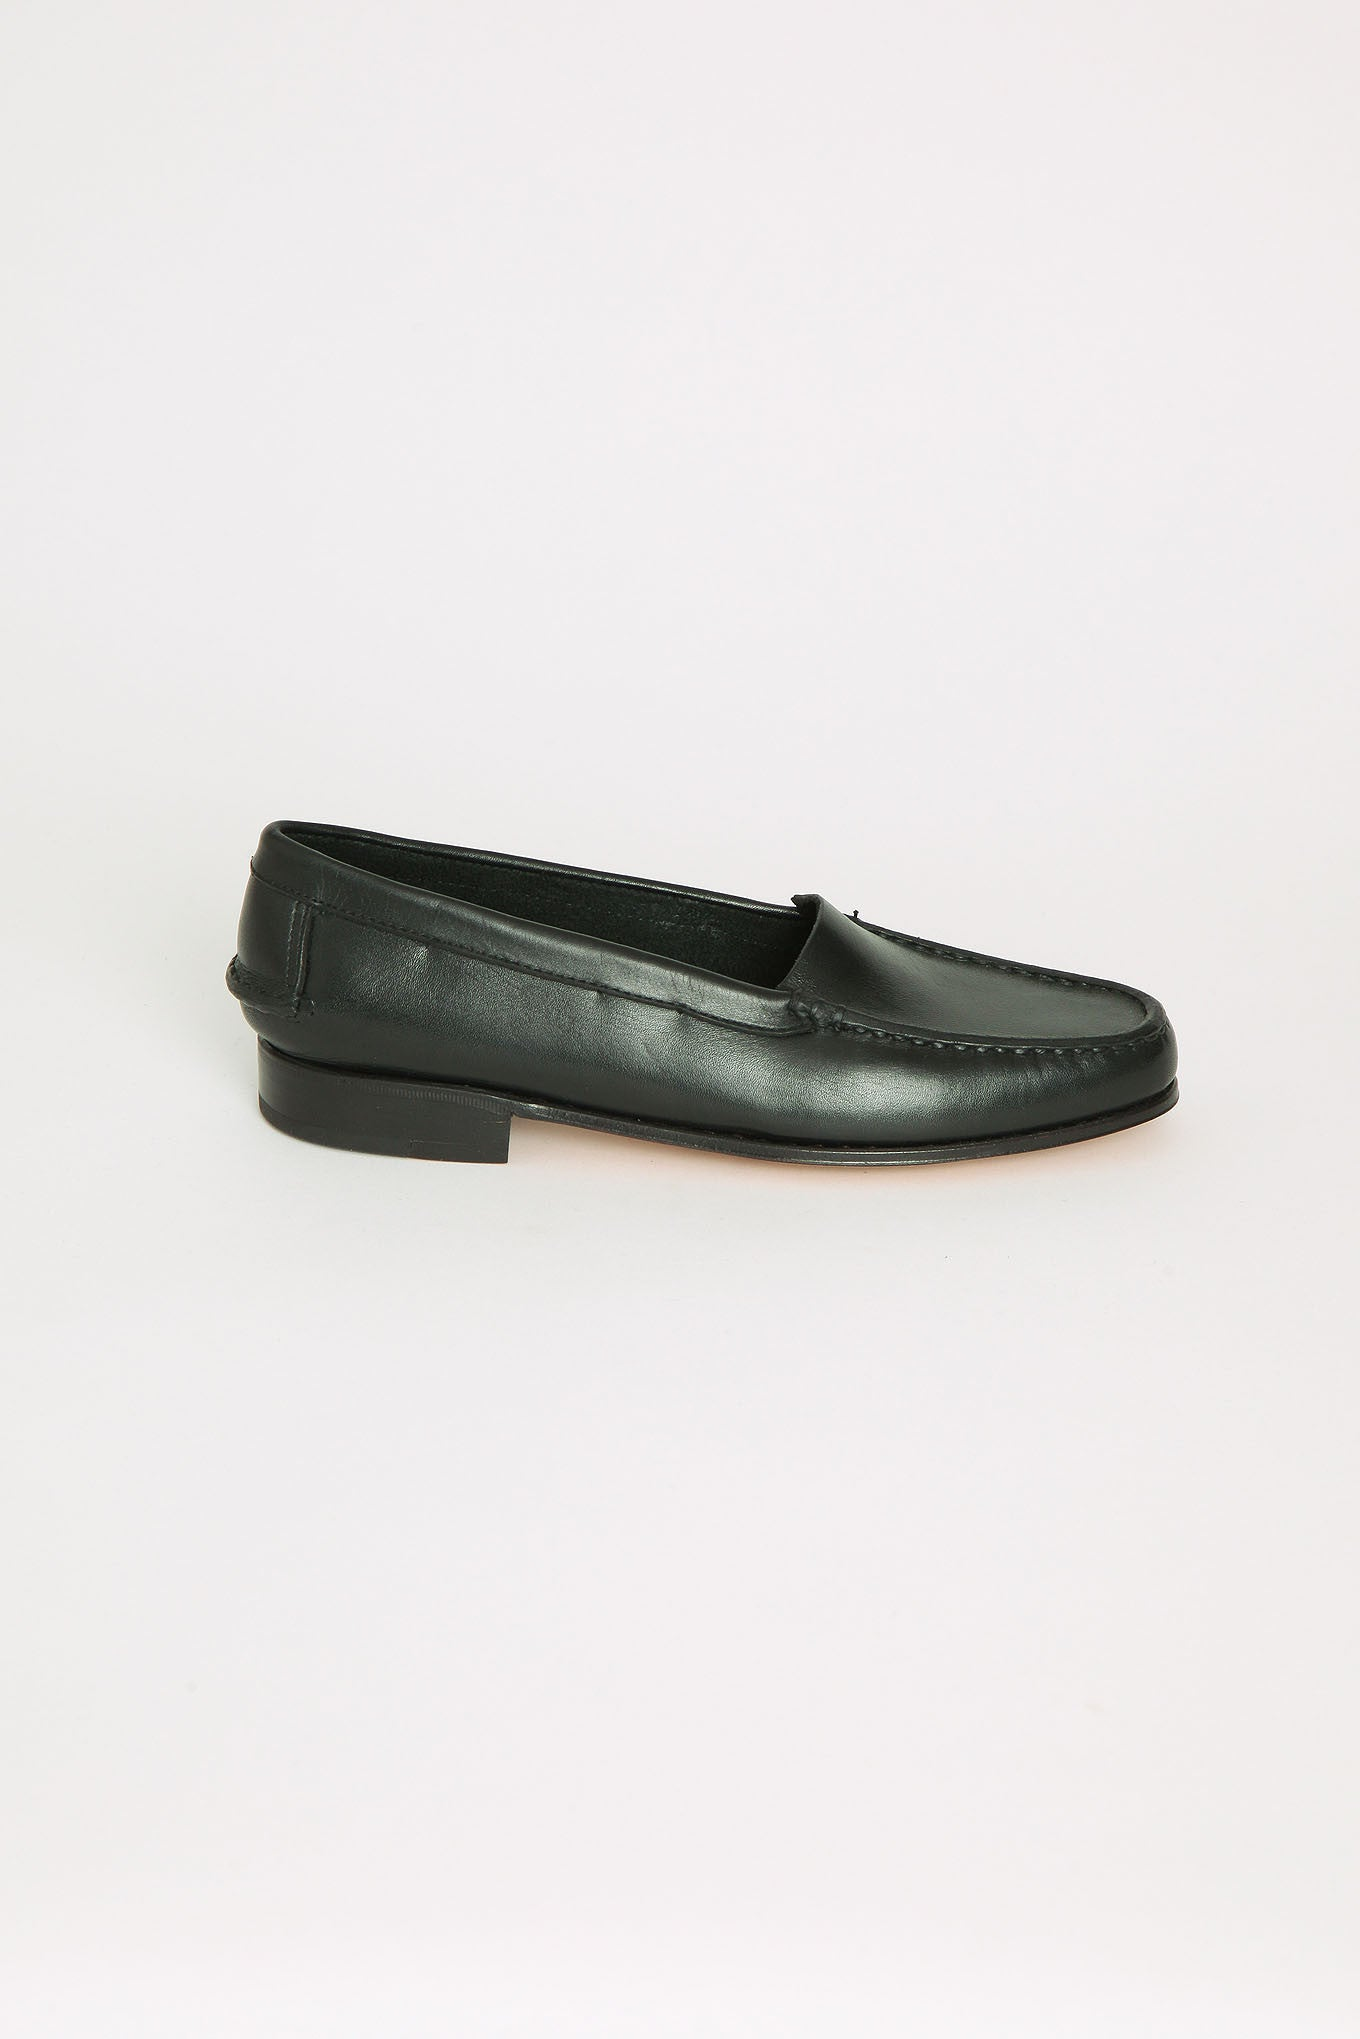 Martiniano / Black Neubau Loafers